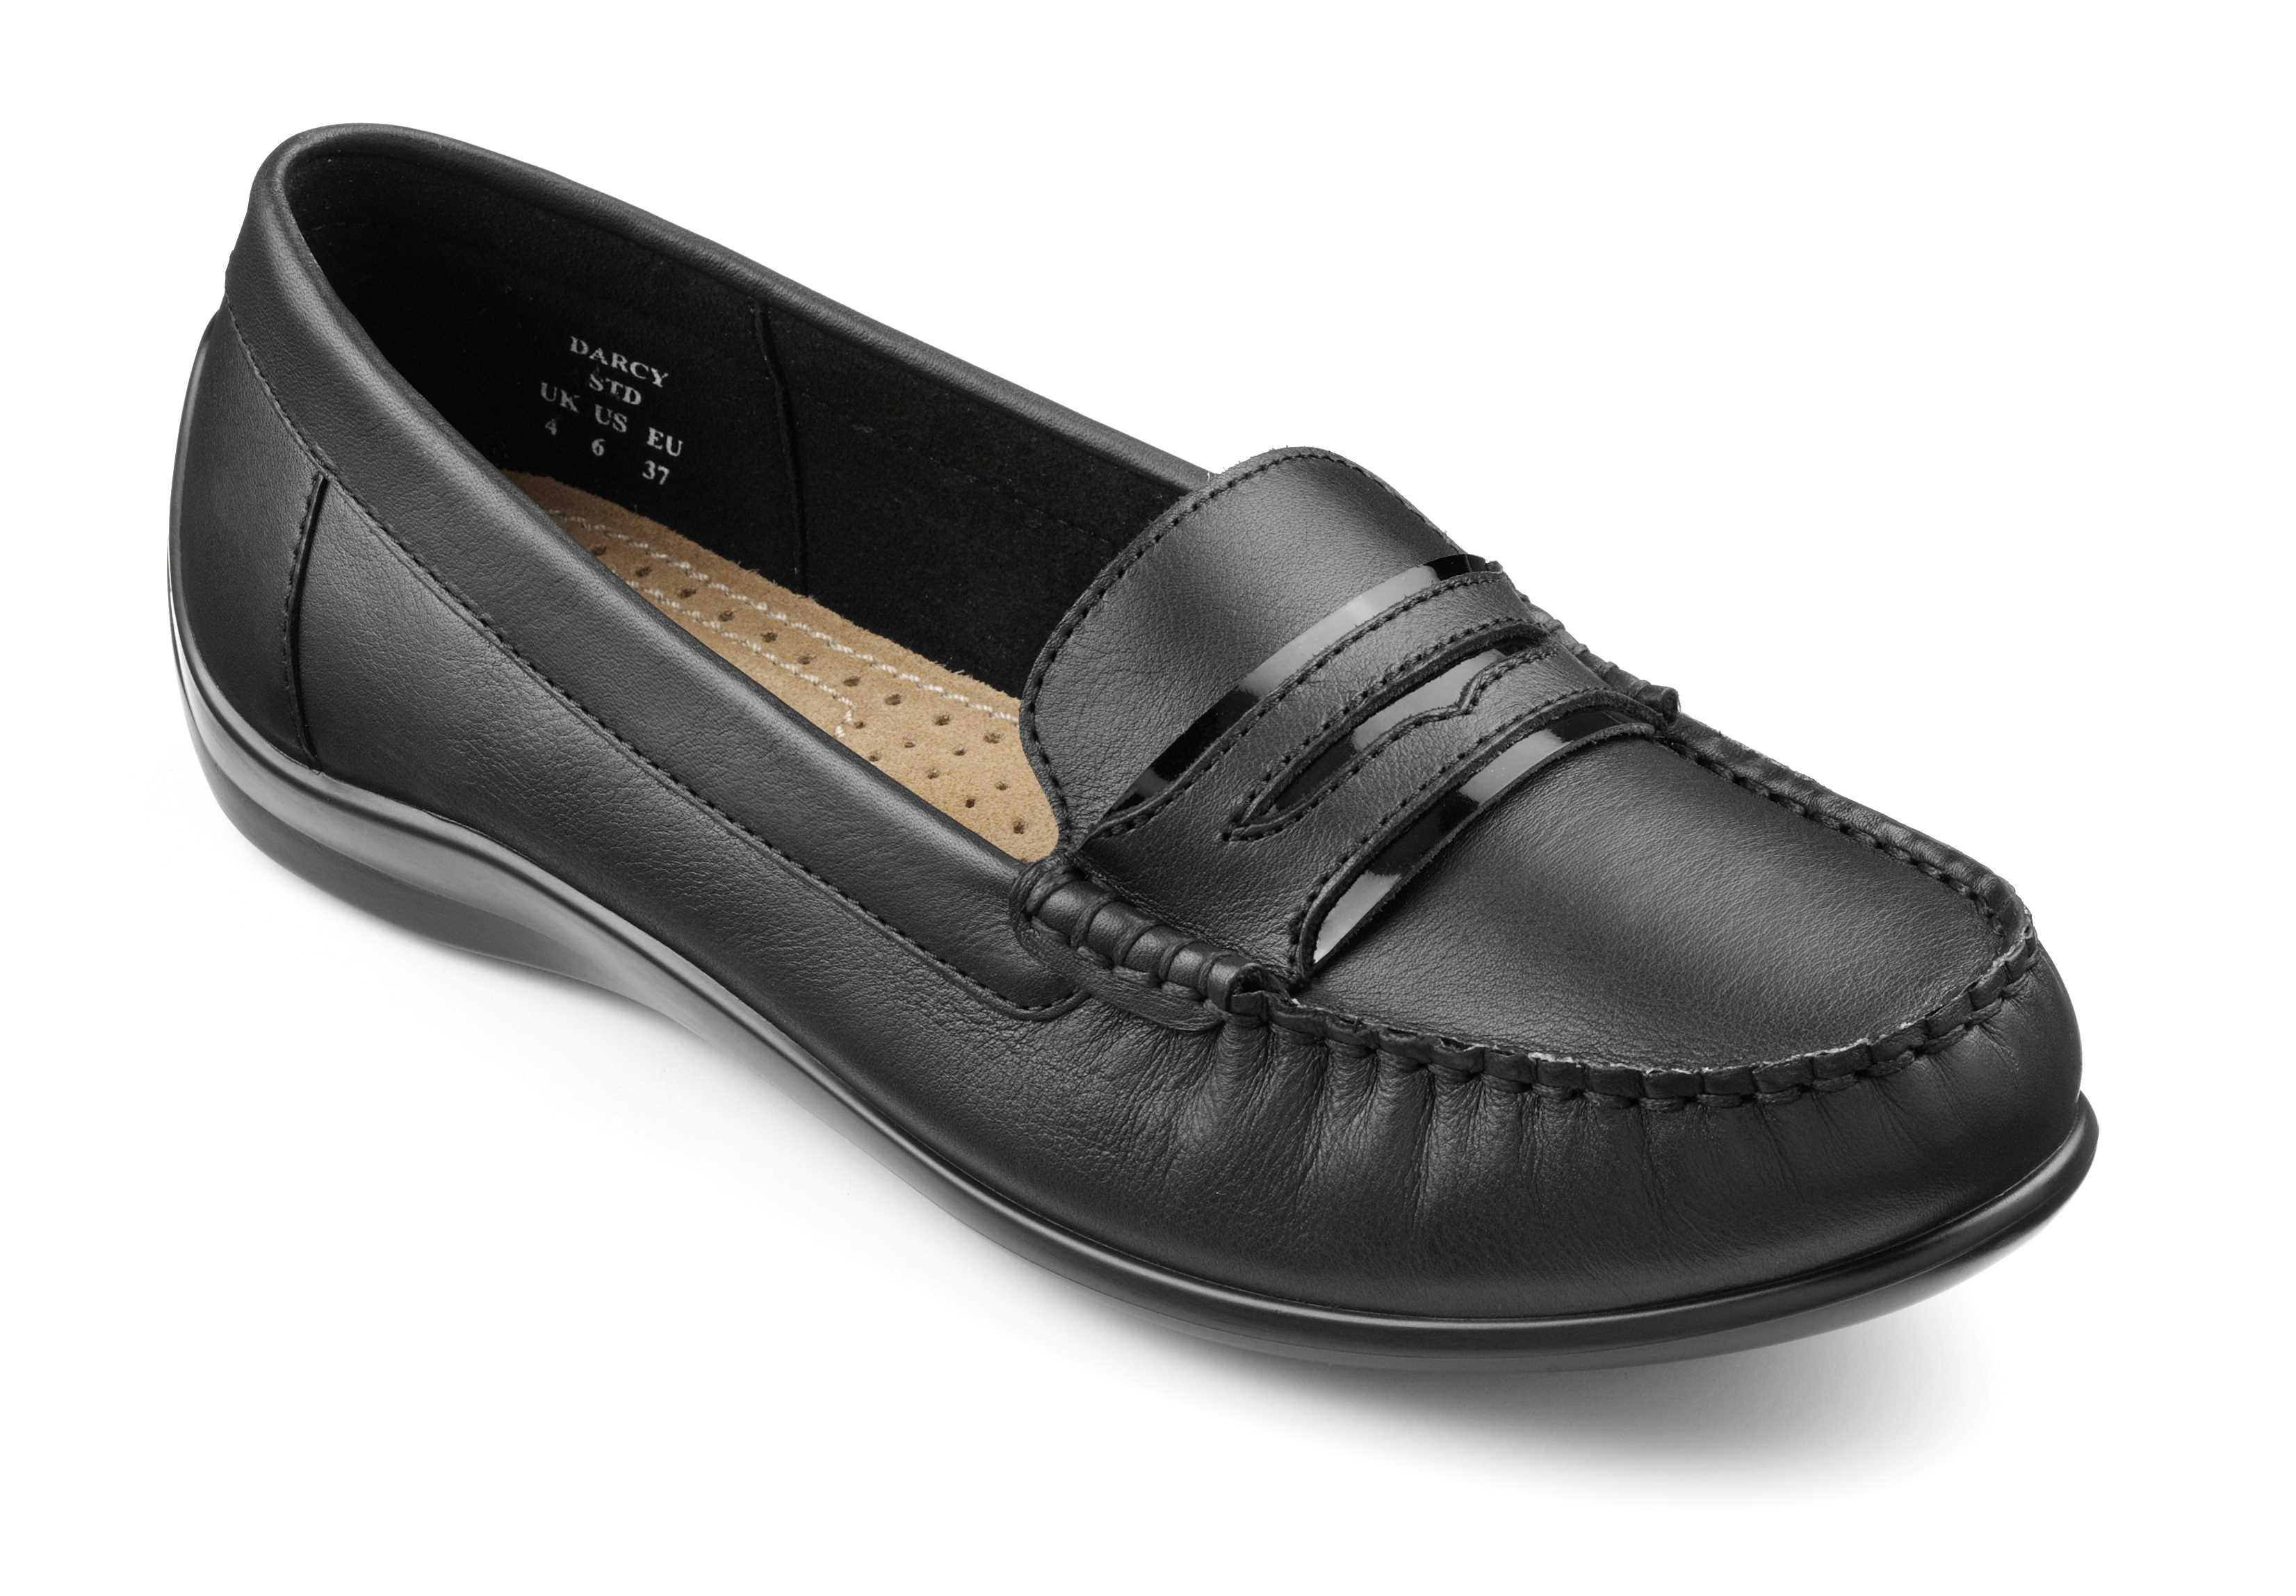 Back to school shoes - Darcy from Hotter